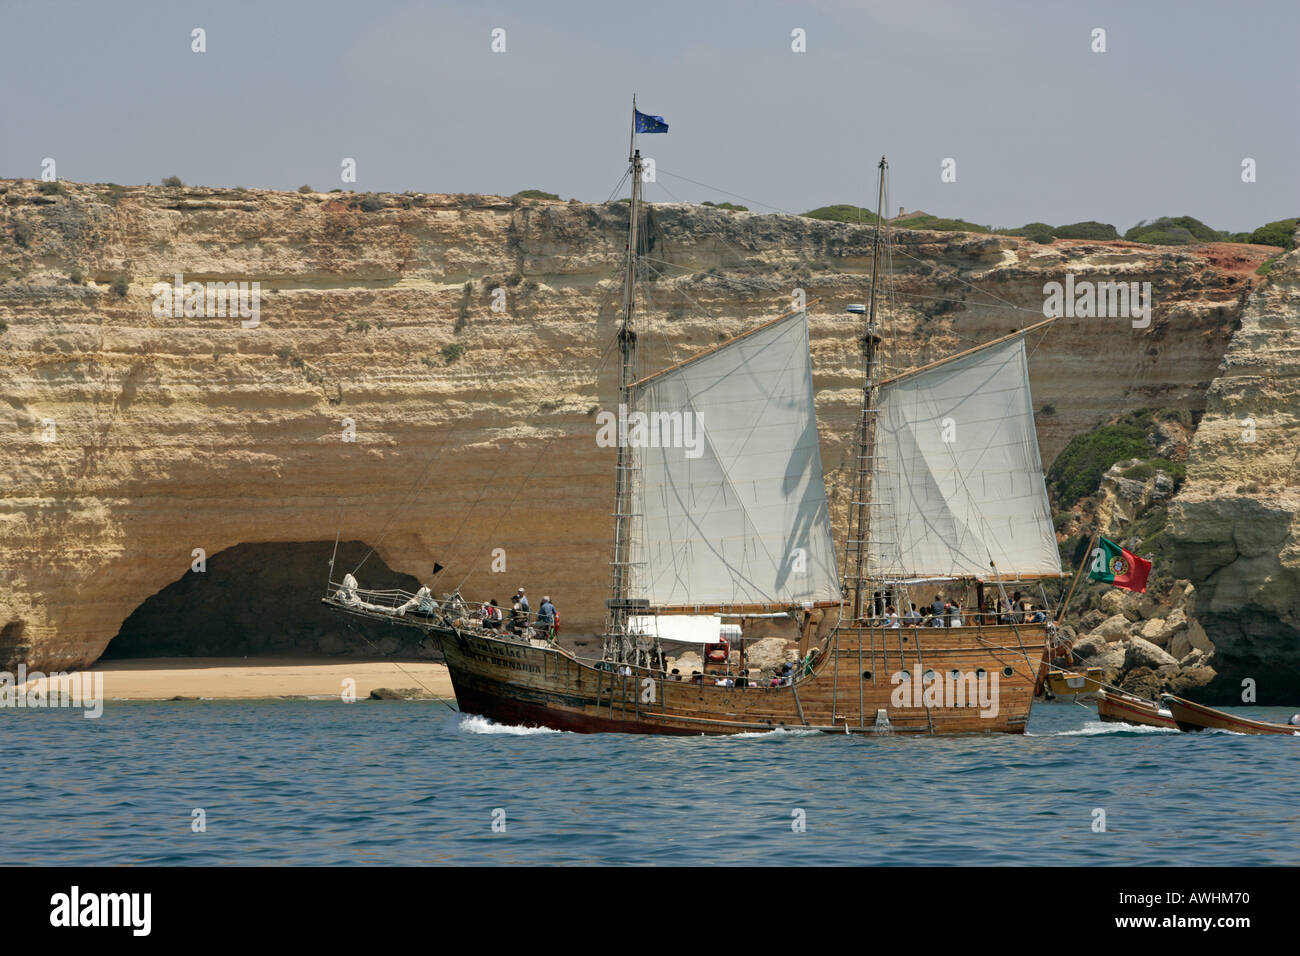 A Portuguese reproduction of a caravel l sails past beaches caves and cliffs along the Algarve coast of Portugal. - Stock Image